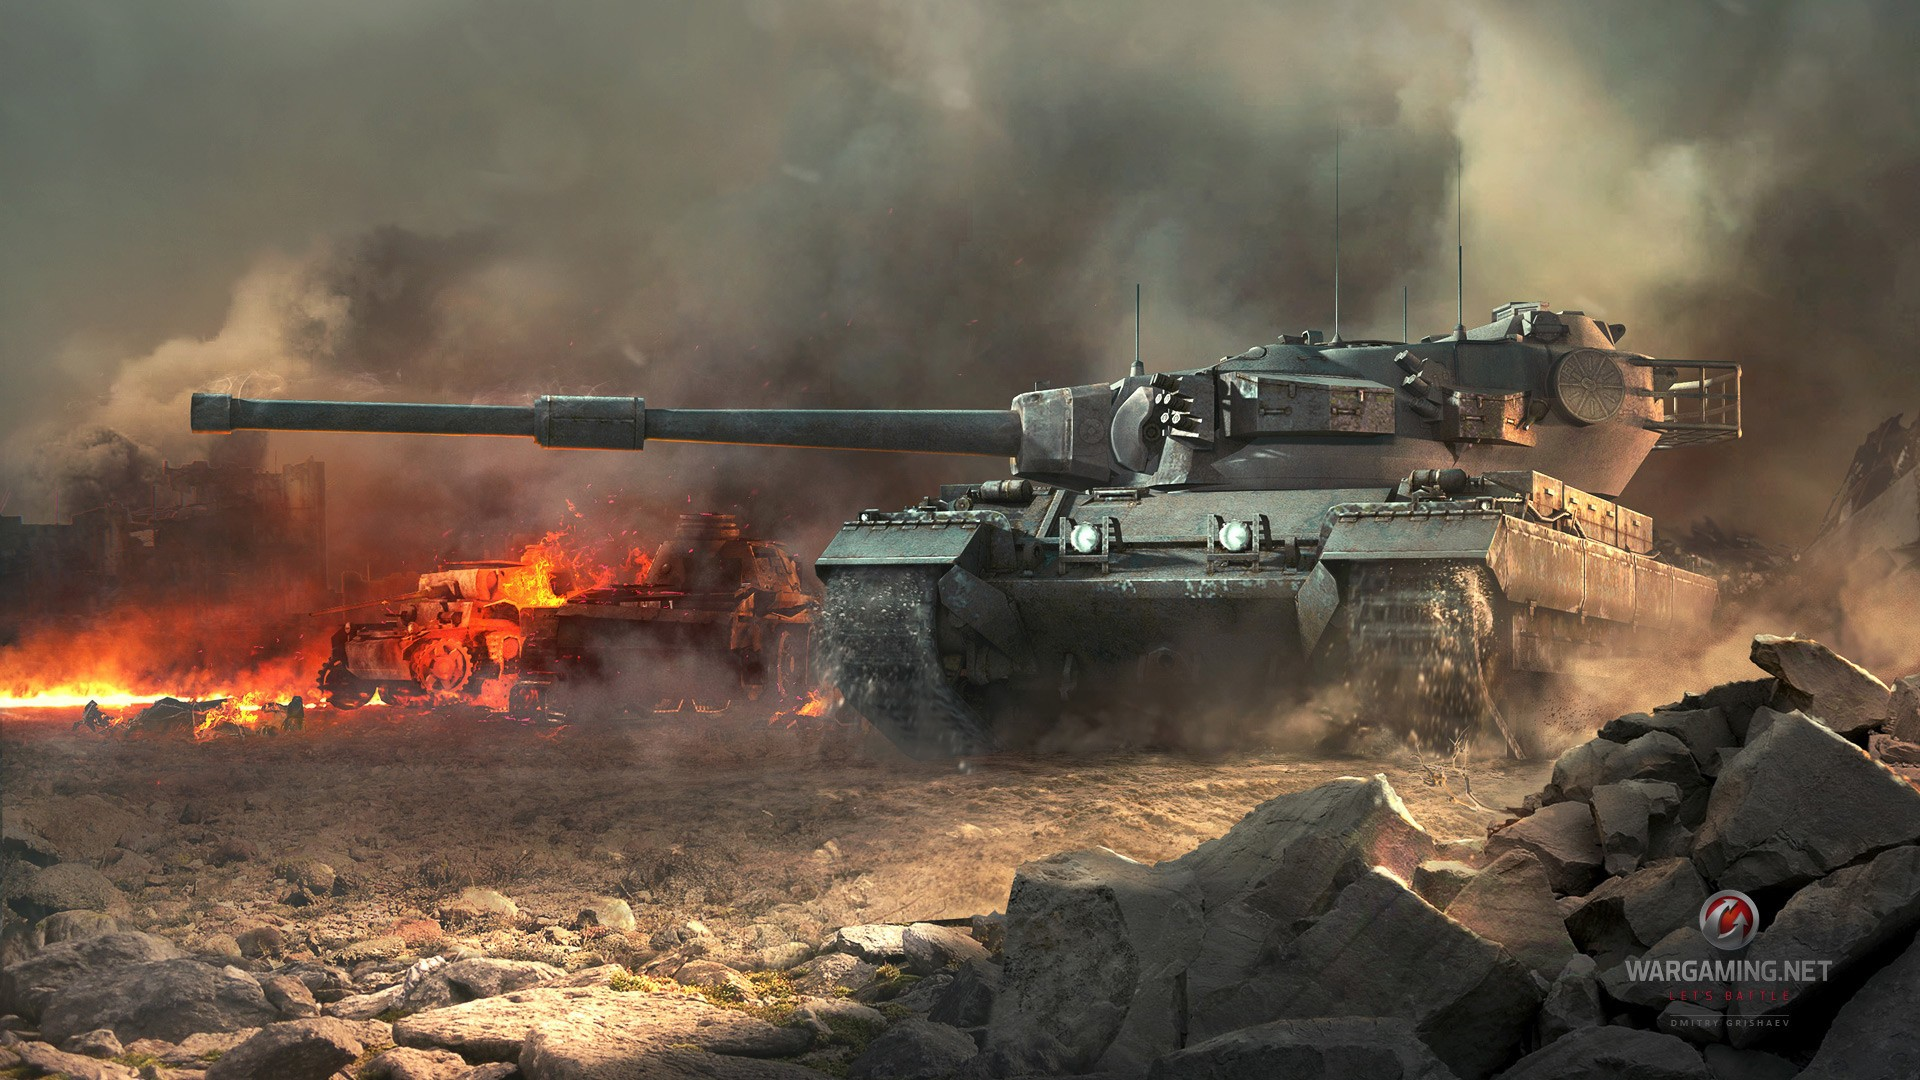 Wallpaper World of Tanks: the perfect tank